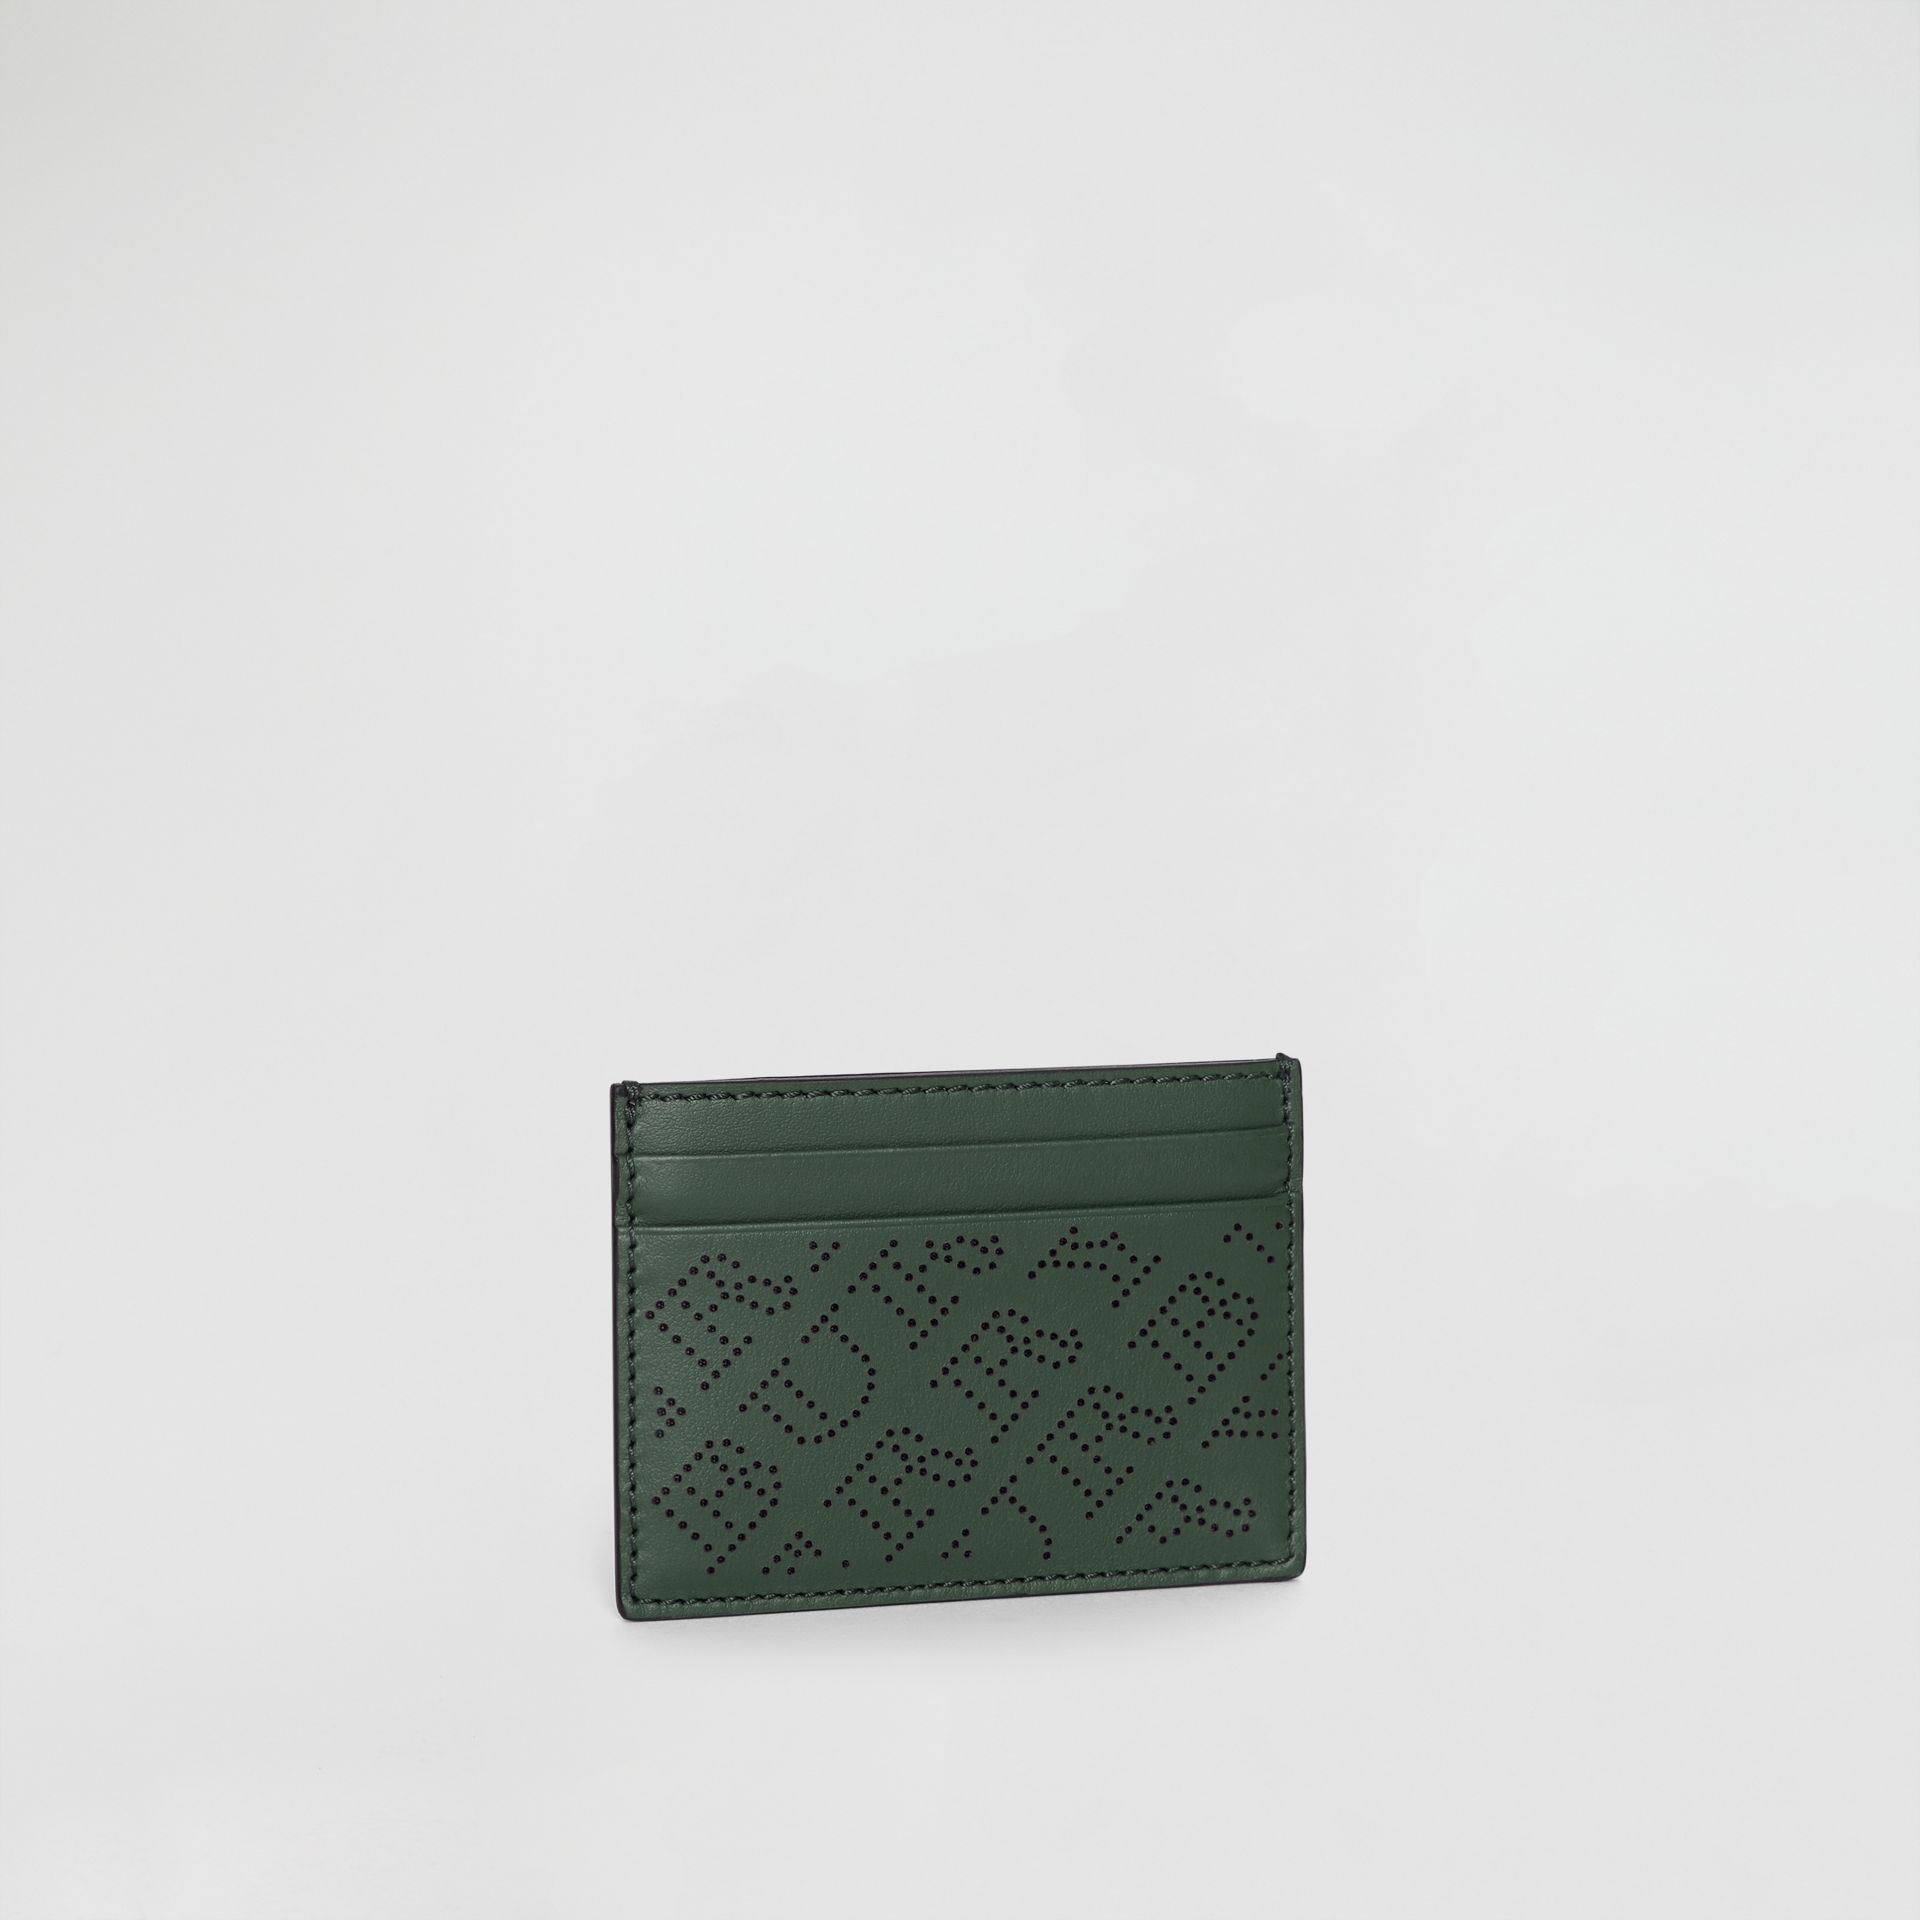 Perforated Logo Leather Card Case in Vintage Green - Women | Burberry Australia - gallery image 4